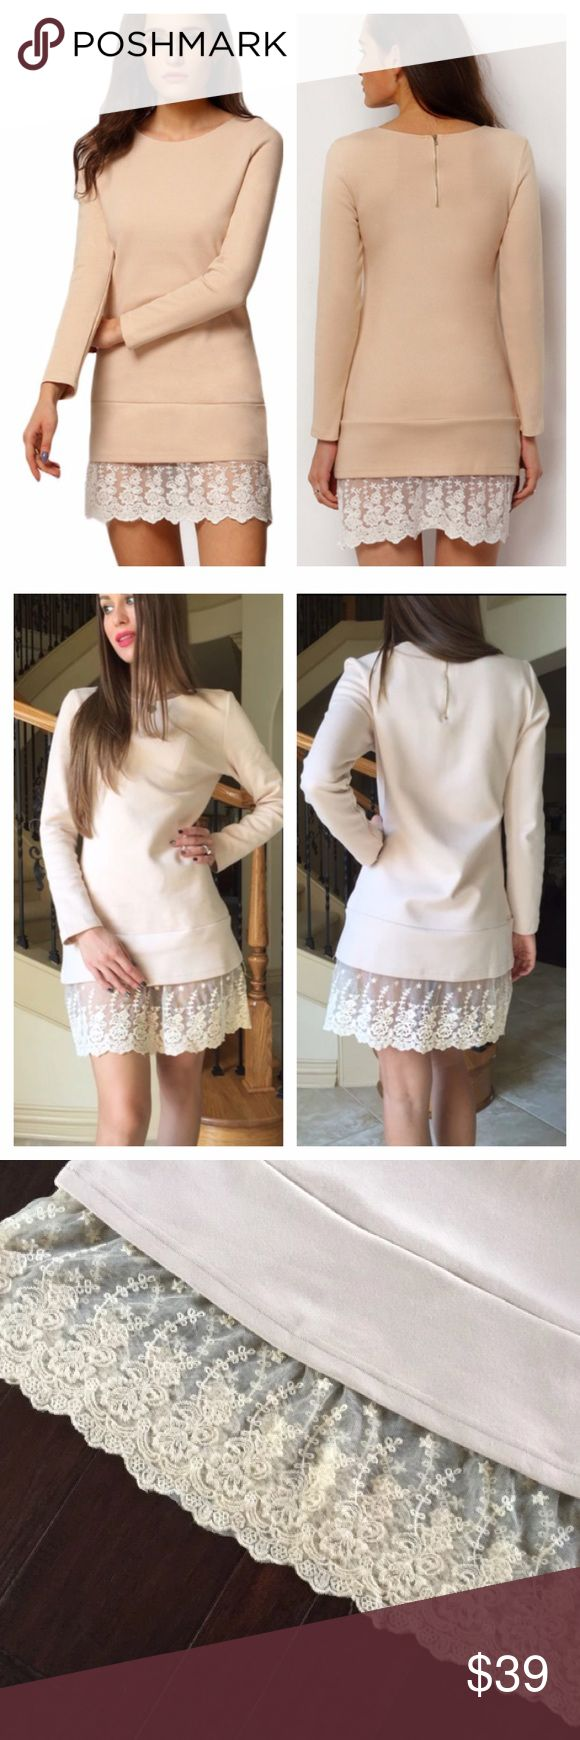 Beige Jersey and Lace Long Sleeve Dress Brand new beautiful Fall/Winter Dress. Runs a little big. Model wears size small. Ships same day if ordered by 10:00 CST. Bundle 3 items and save 15%. Dresses